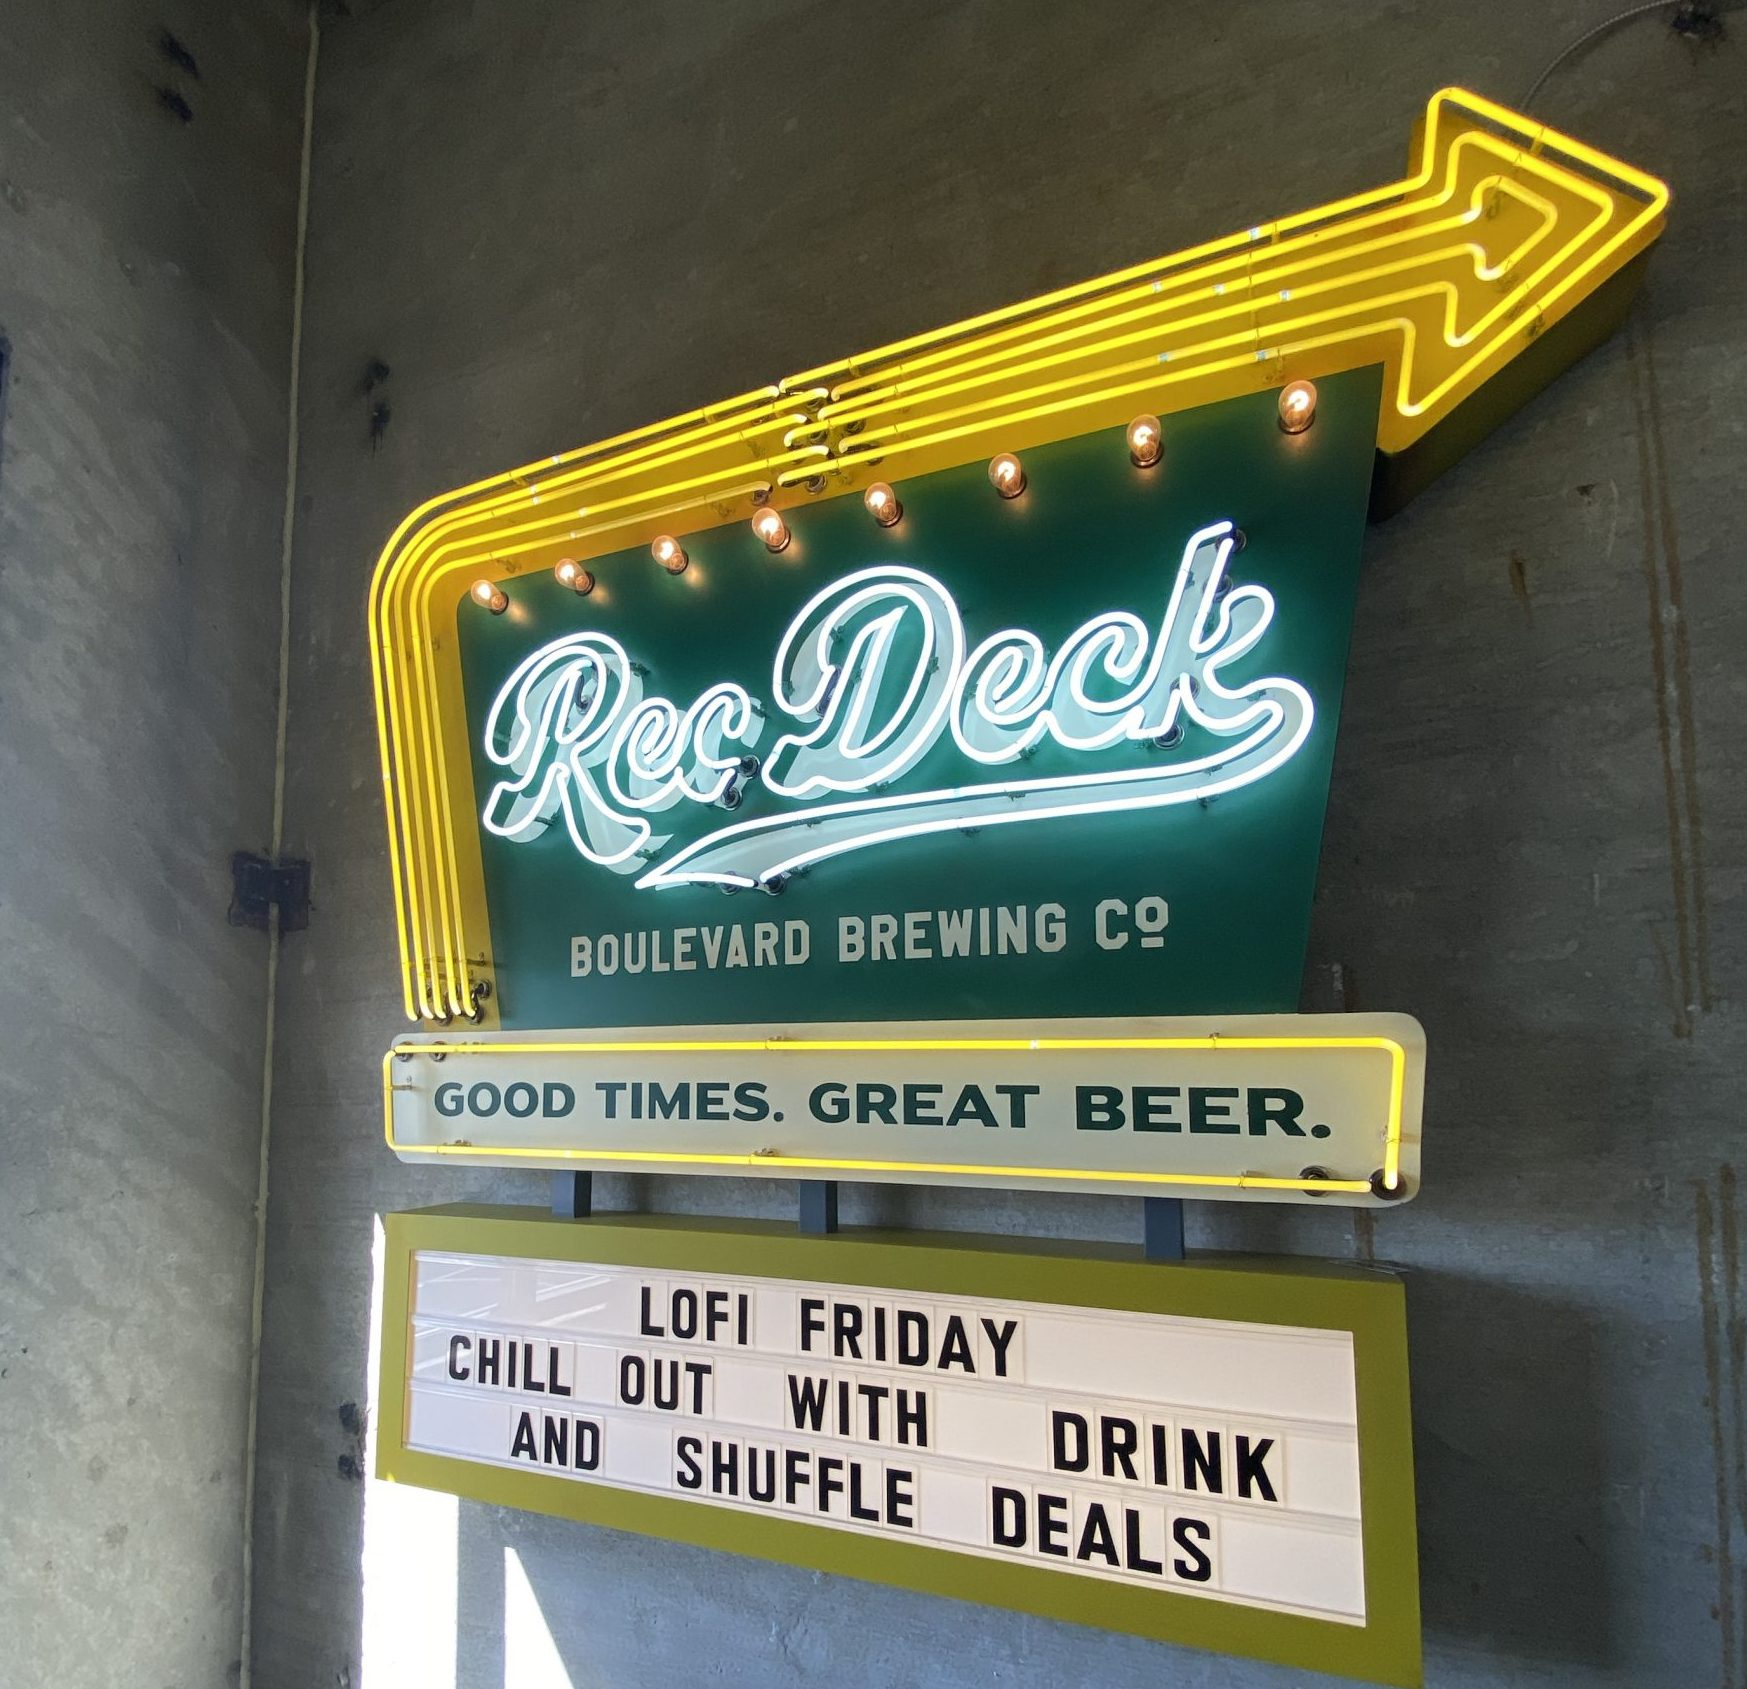 Rec Deck Marquee Sign - LoFi Friday Happy Hour